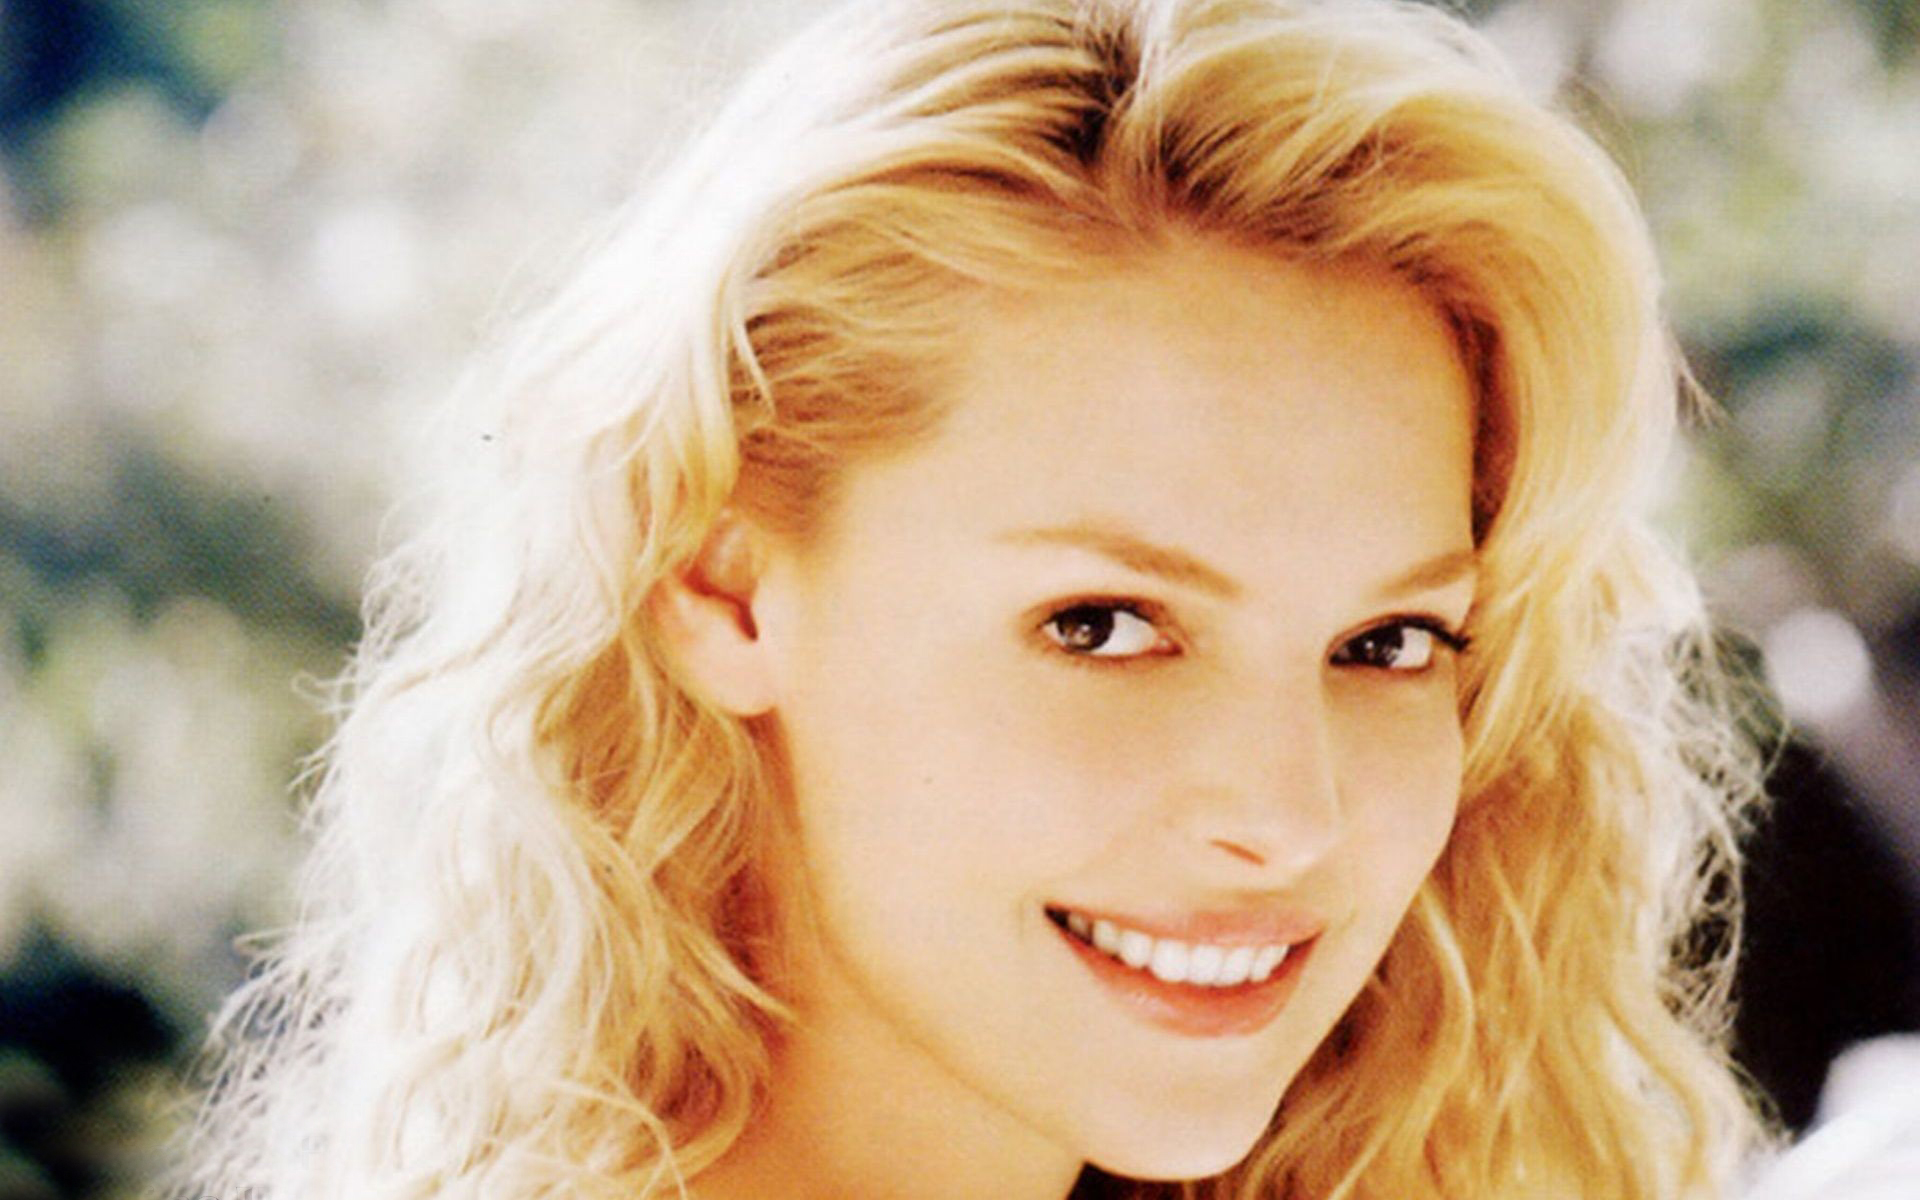 Katherine Heigl Wallpapers High Resolution and Quality Download 1920x1200